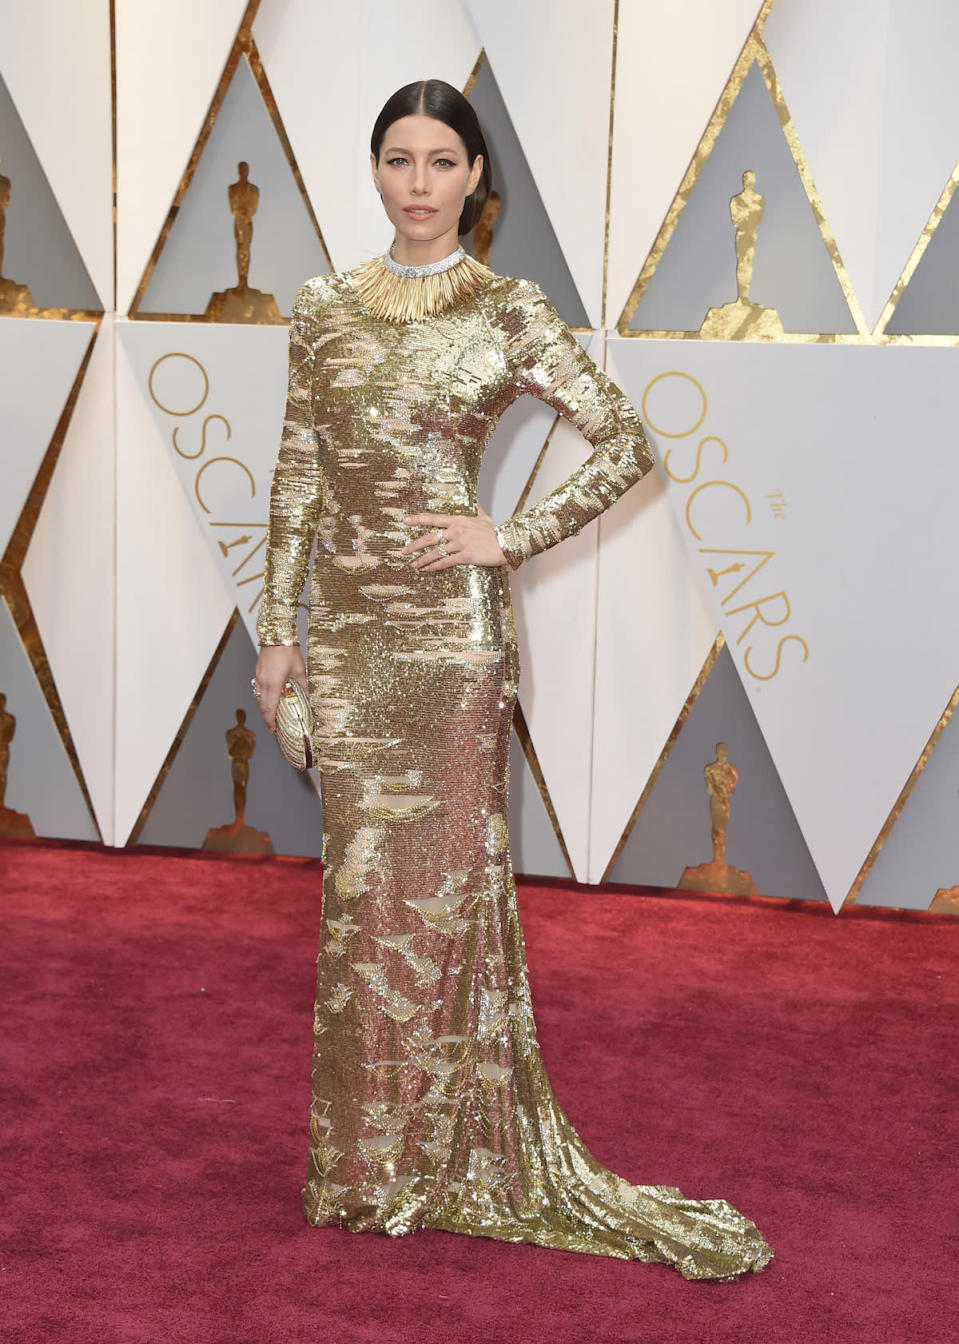 <p>Jessica Biel's form-fitting Kaufman Franco gold gown was already stunning. Then, she basically assured herself a spot on the best dressed list by adding lots of Tiffany & Co. bling, most notably a necklace with more than<span> 350 uniquely shaped 18 karat gold fronds and m</span><span>ore than 200 baguette diamonds. She also wore a $21,500 ring. </span><em>(Photo: Getty Images)</em> </p>